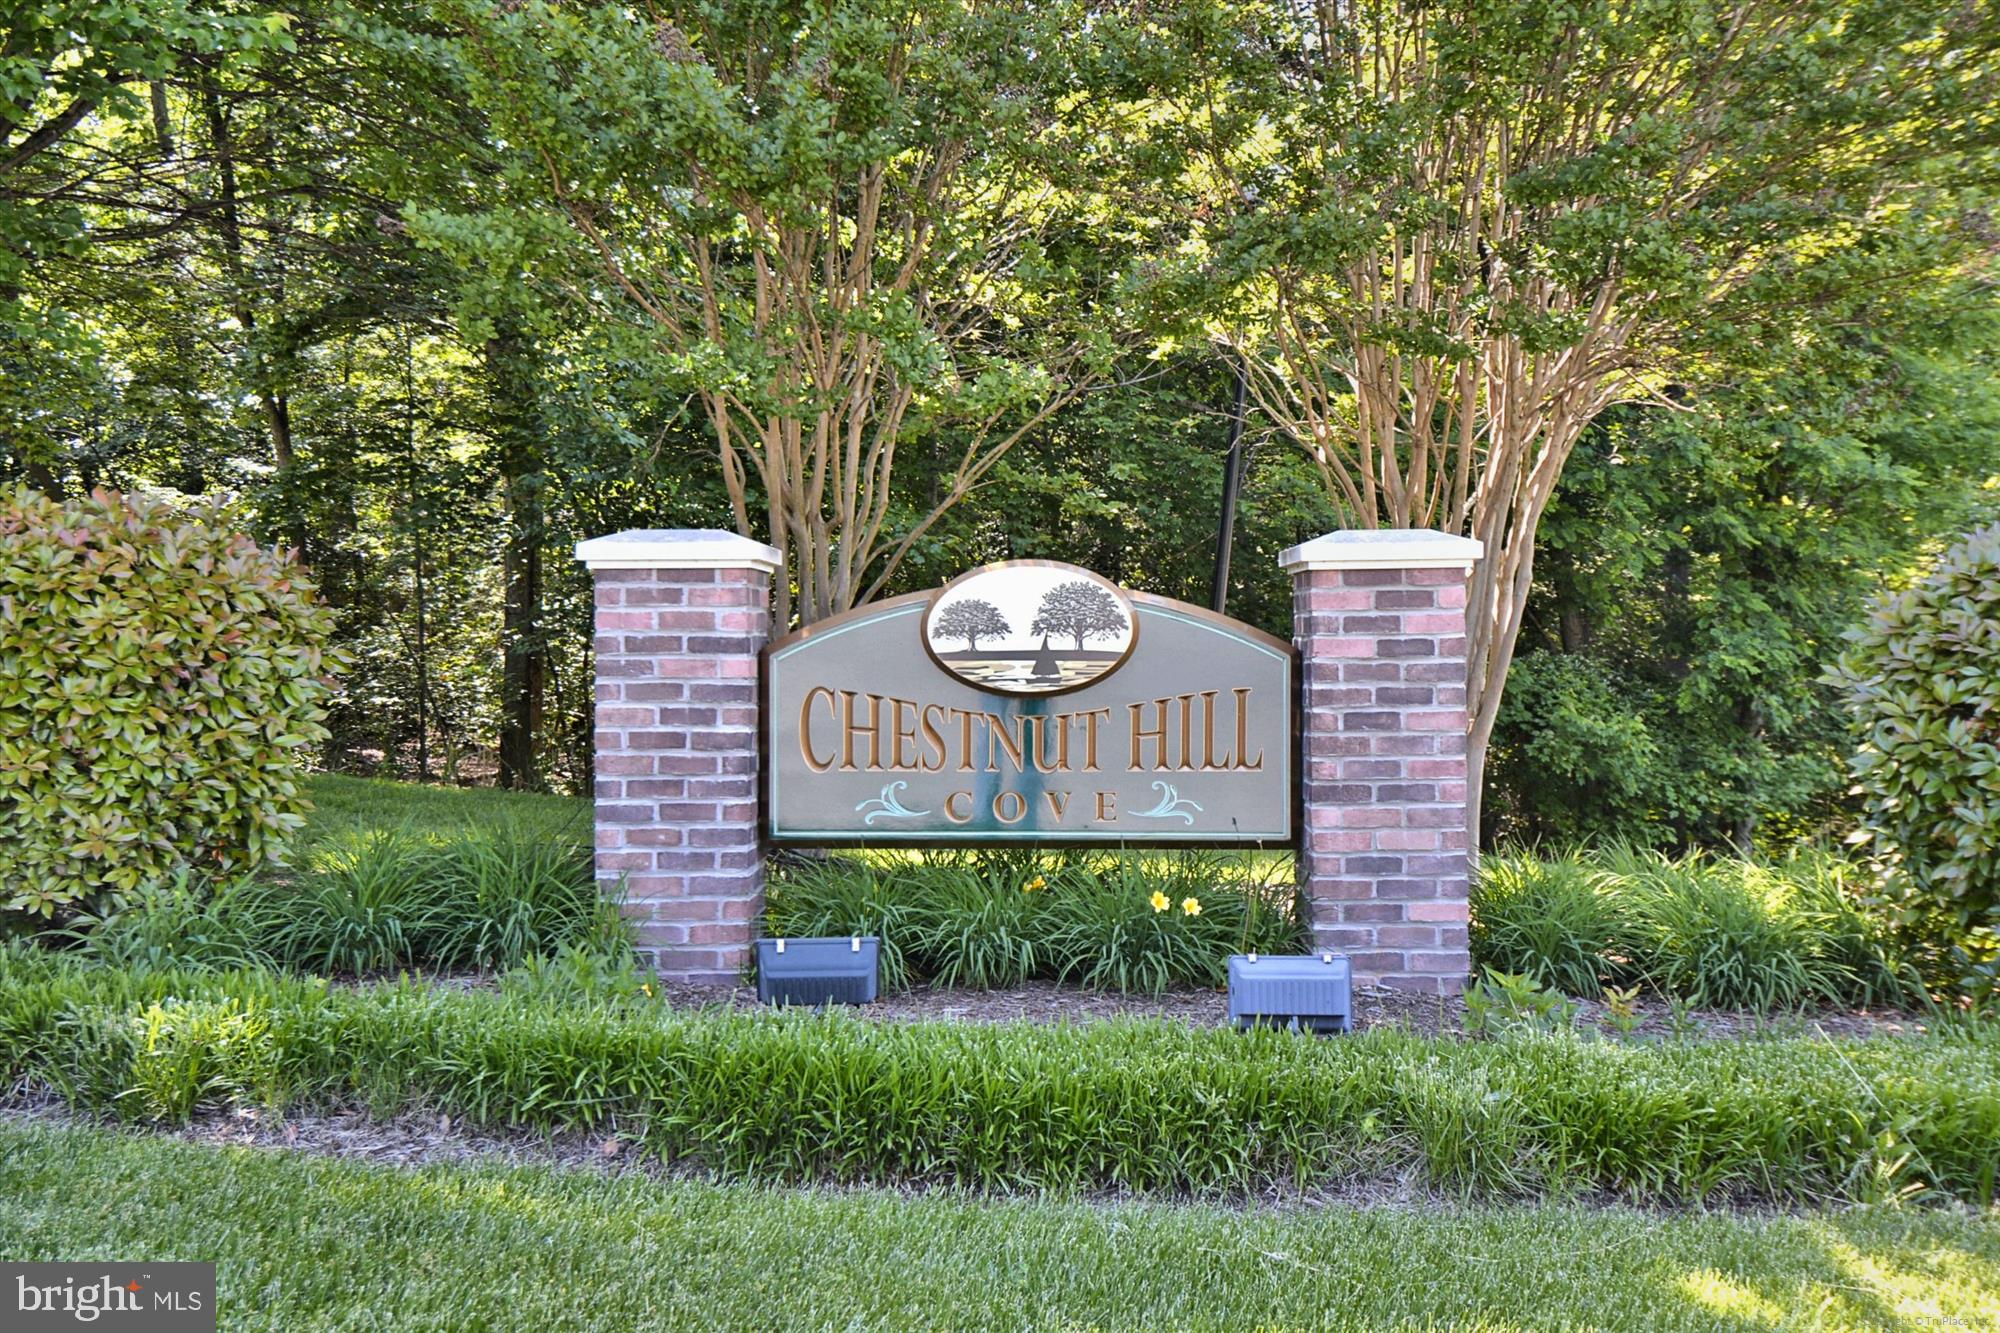 863 CHESTNUT VIEW COURT, CHESTNUT HILL COVE, MD 21226